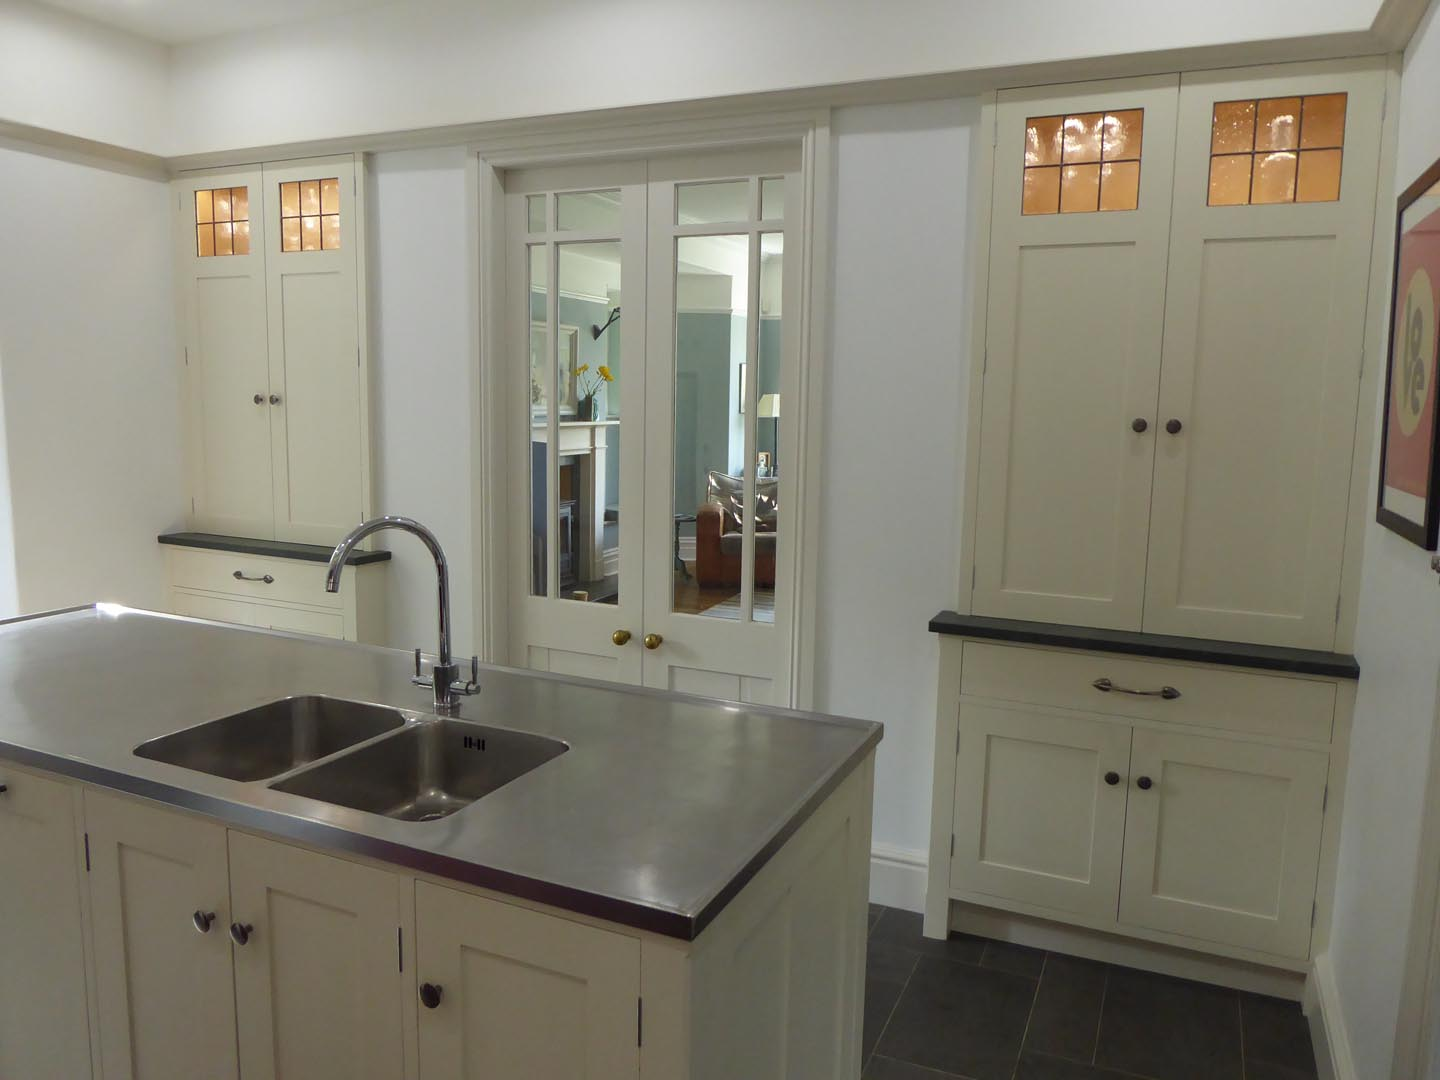 Painted Arts & Crafts Kitchen with Oak Detailing